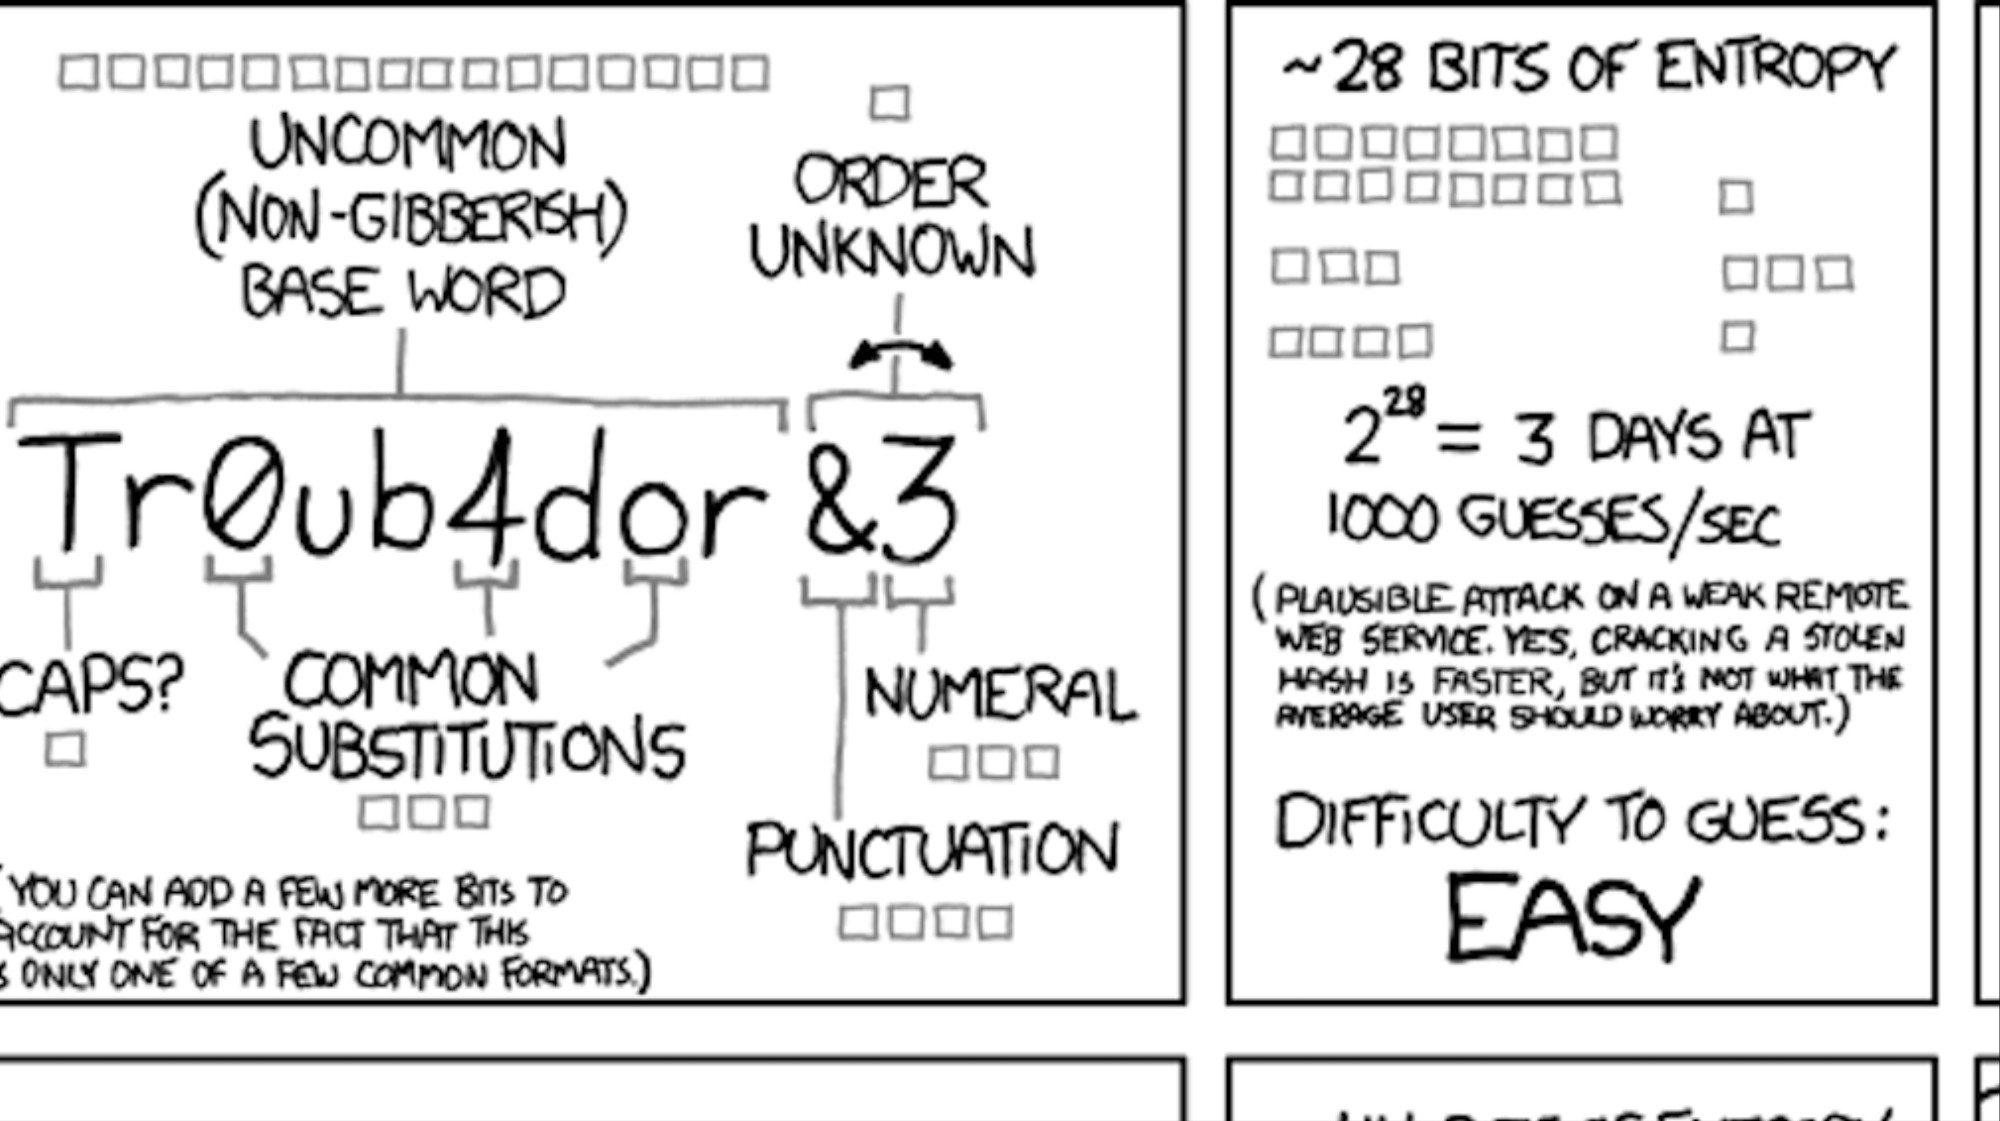 Hackers Breach Forum Of Popular Webcomic 'XKCD' - VICE